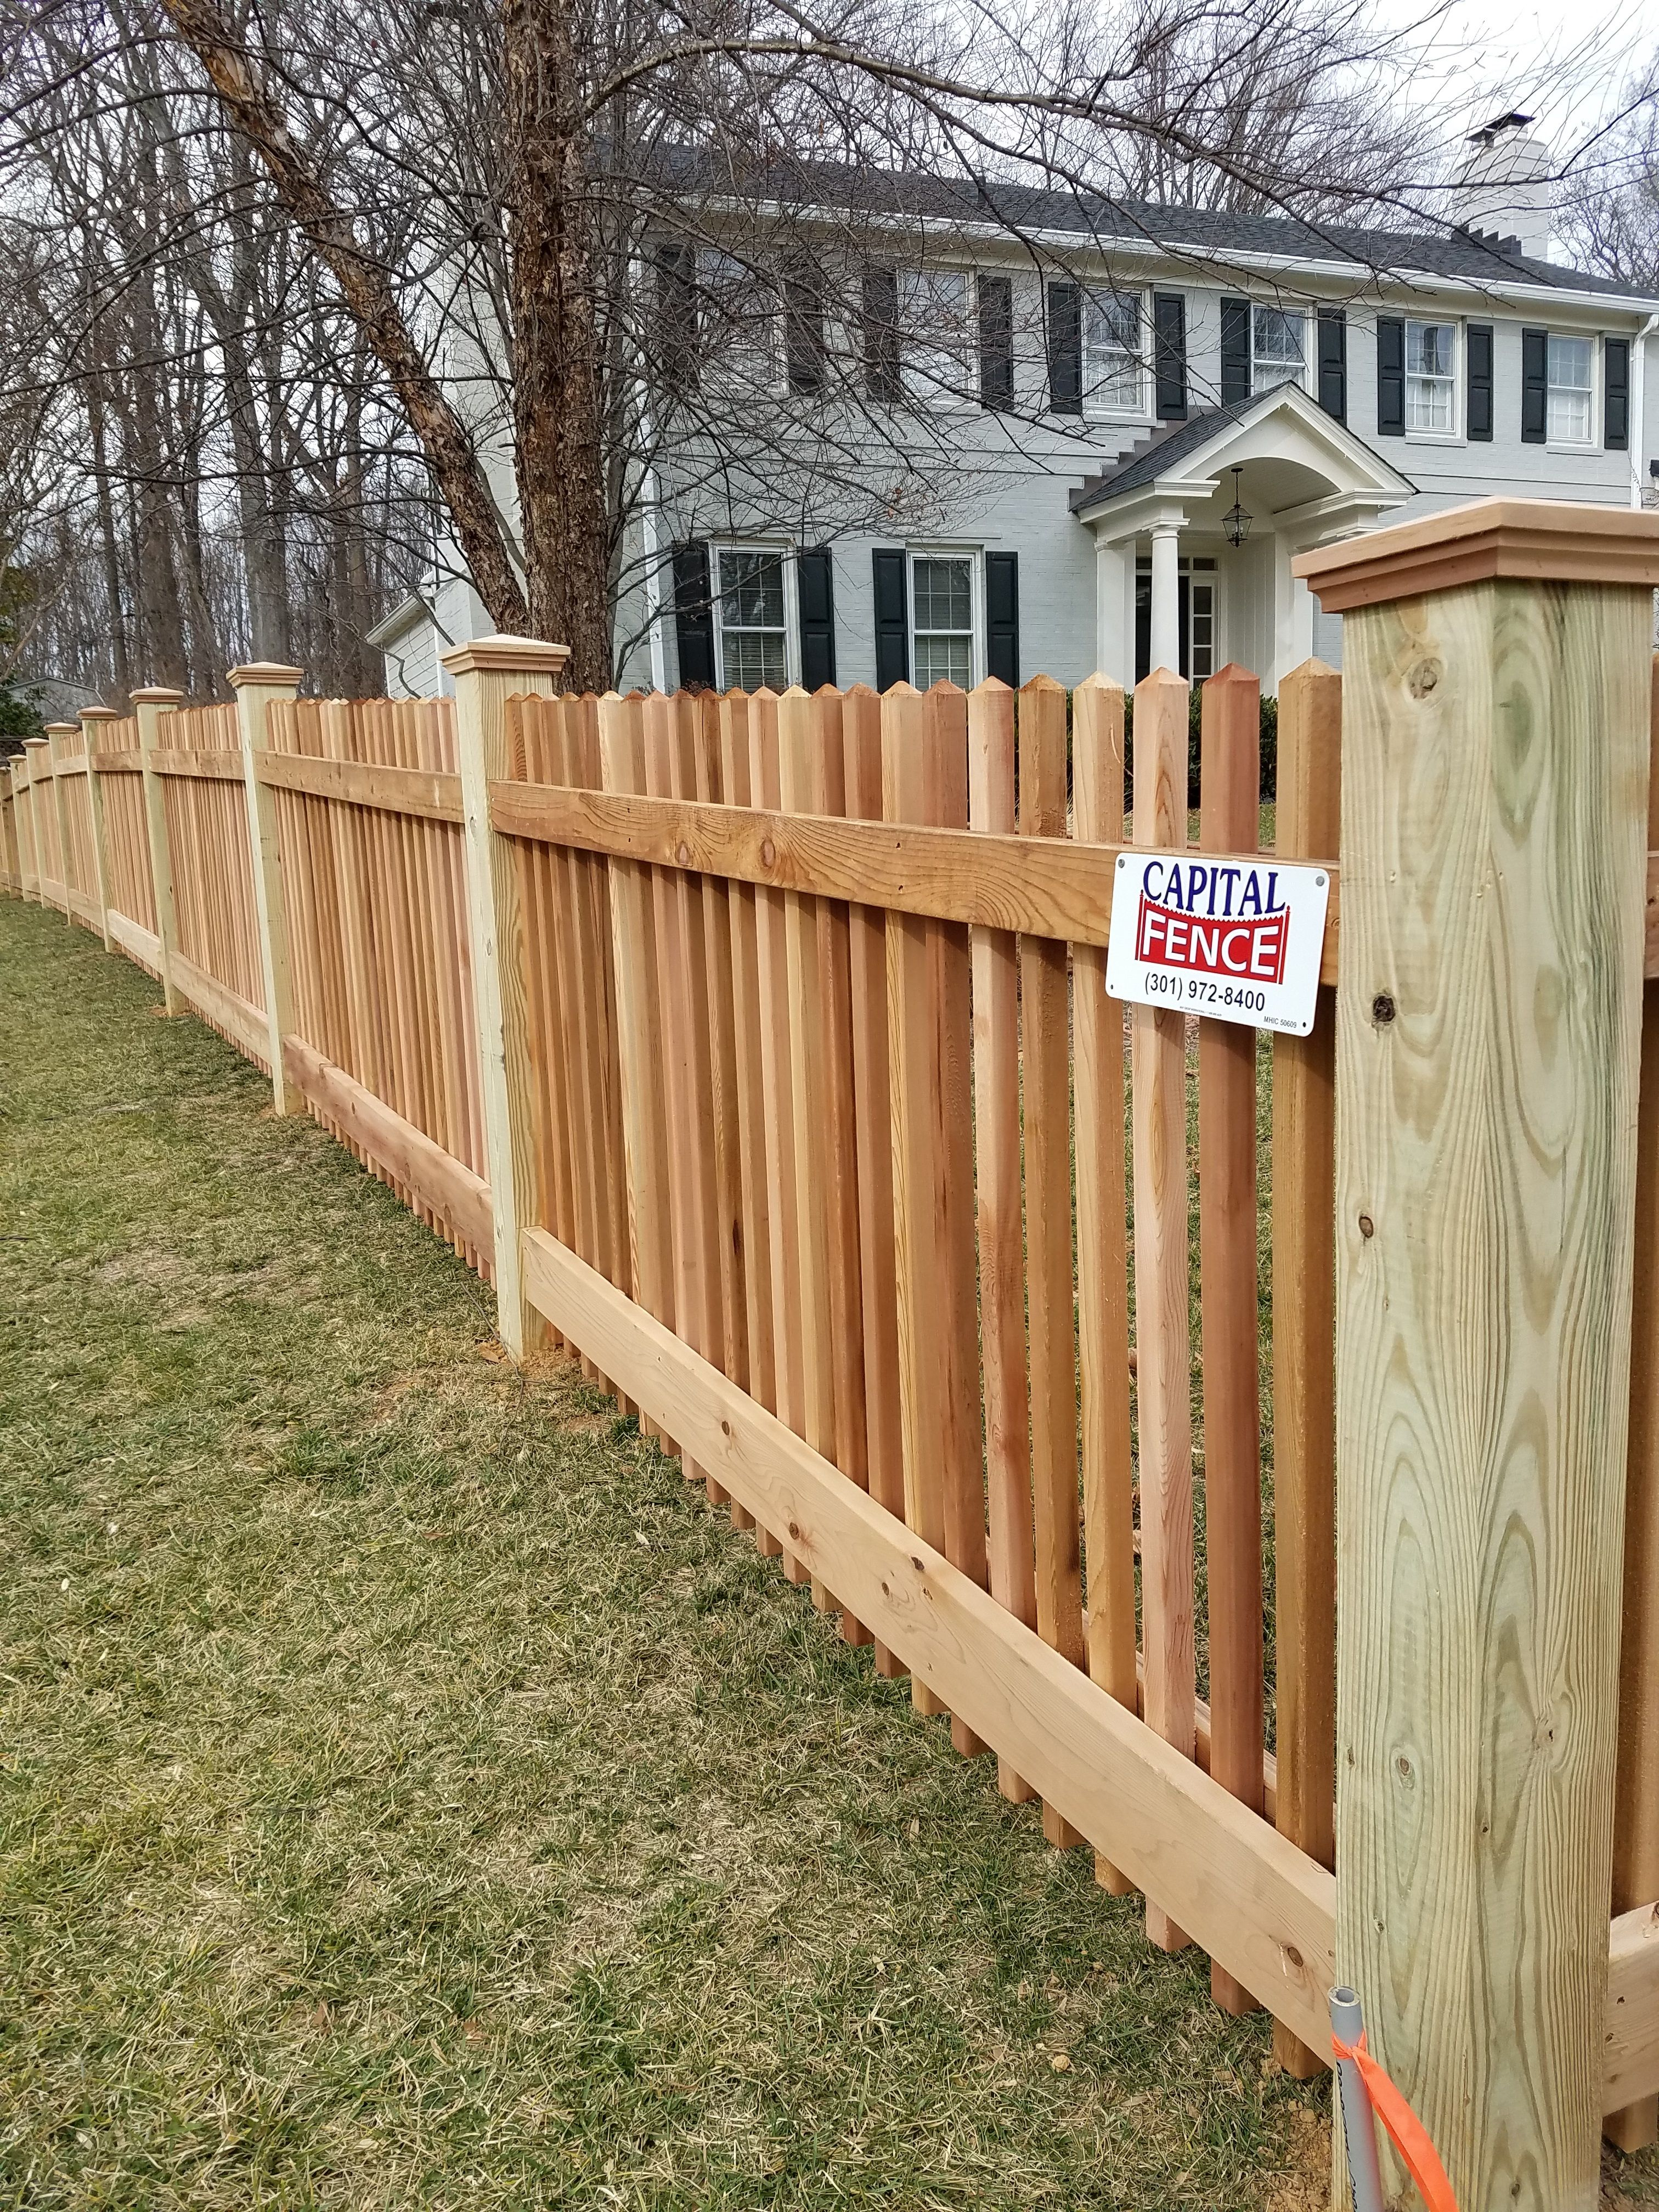 17.SIMPHOME.COM poolesville picket wood fence wood picket fence in 2019 2099